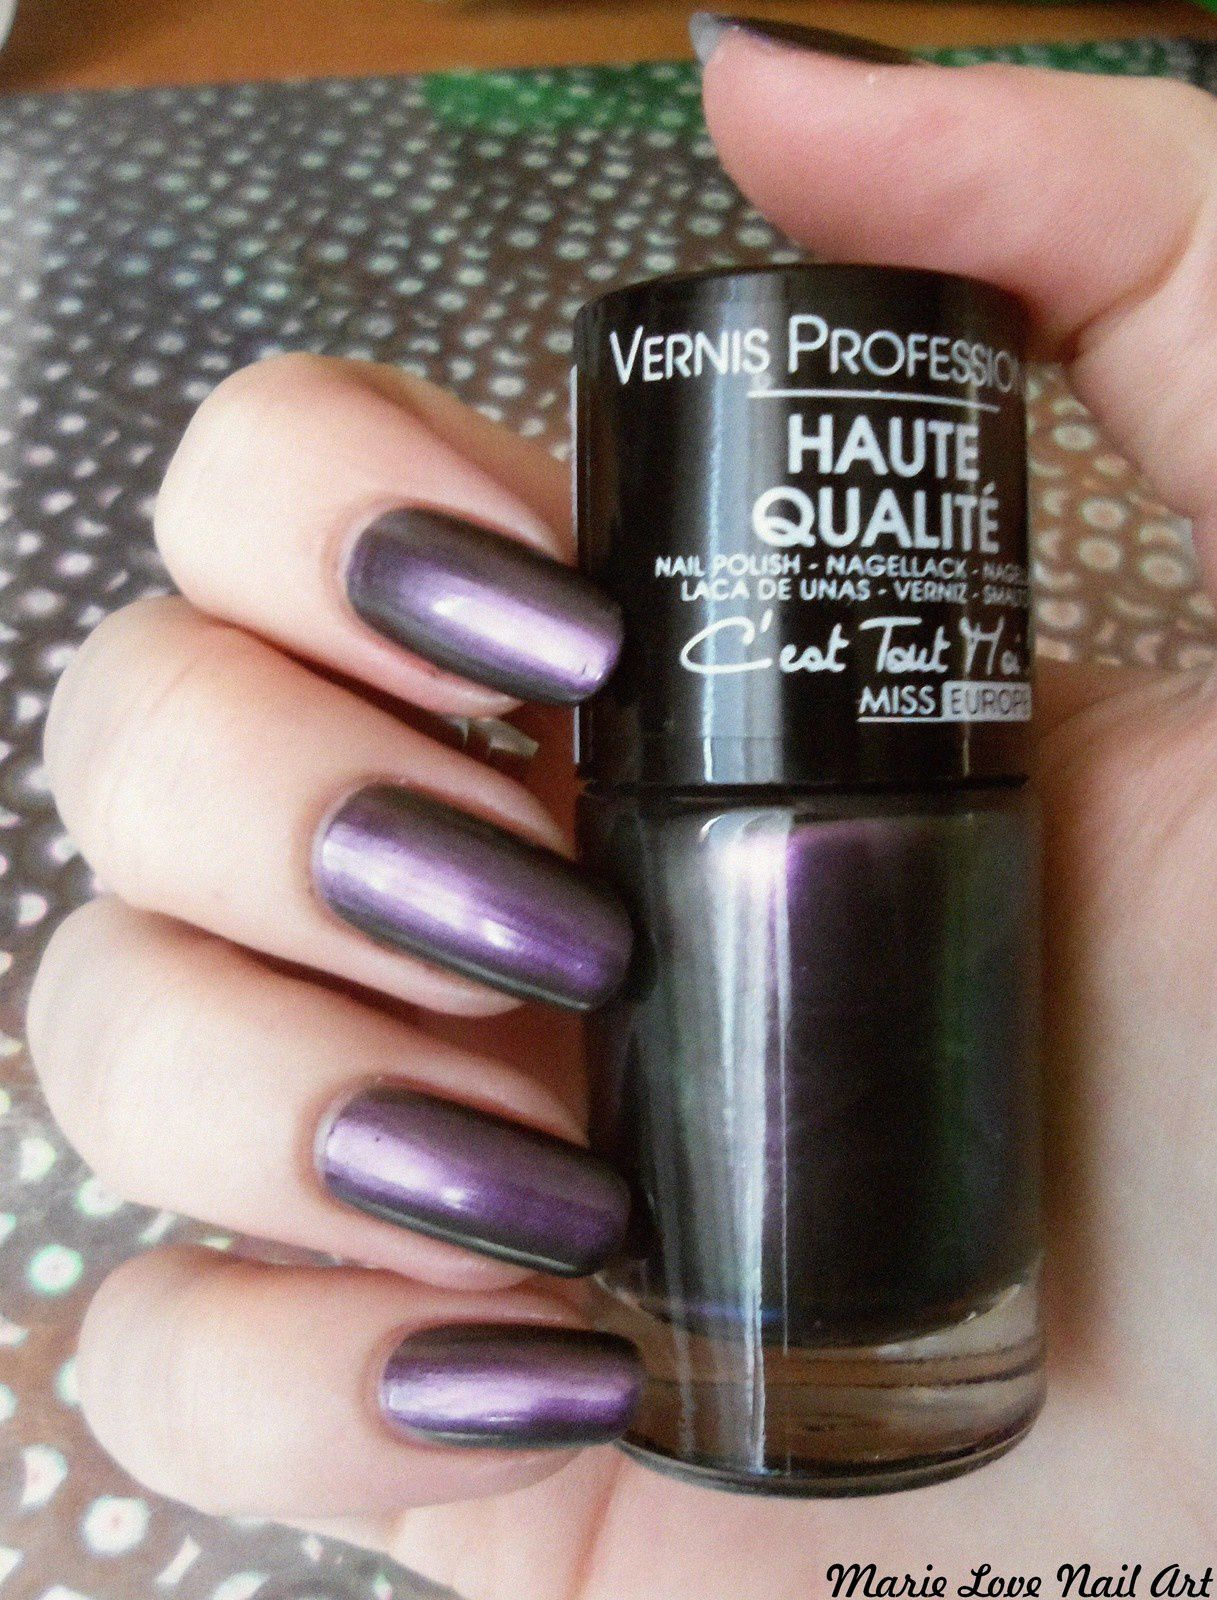 Miss Europe - Mauve Addict